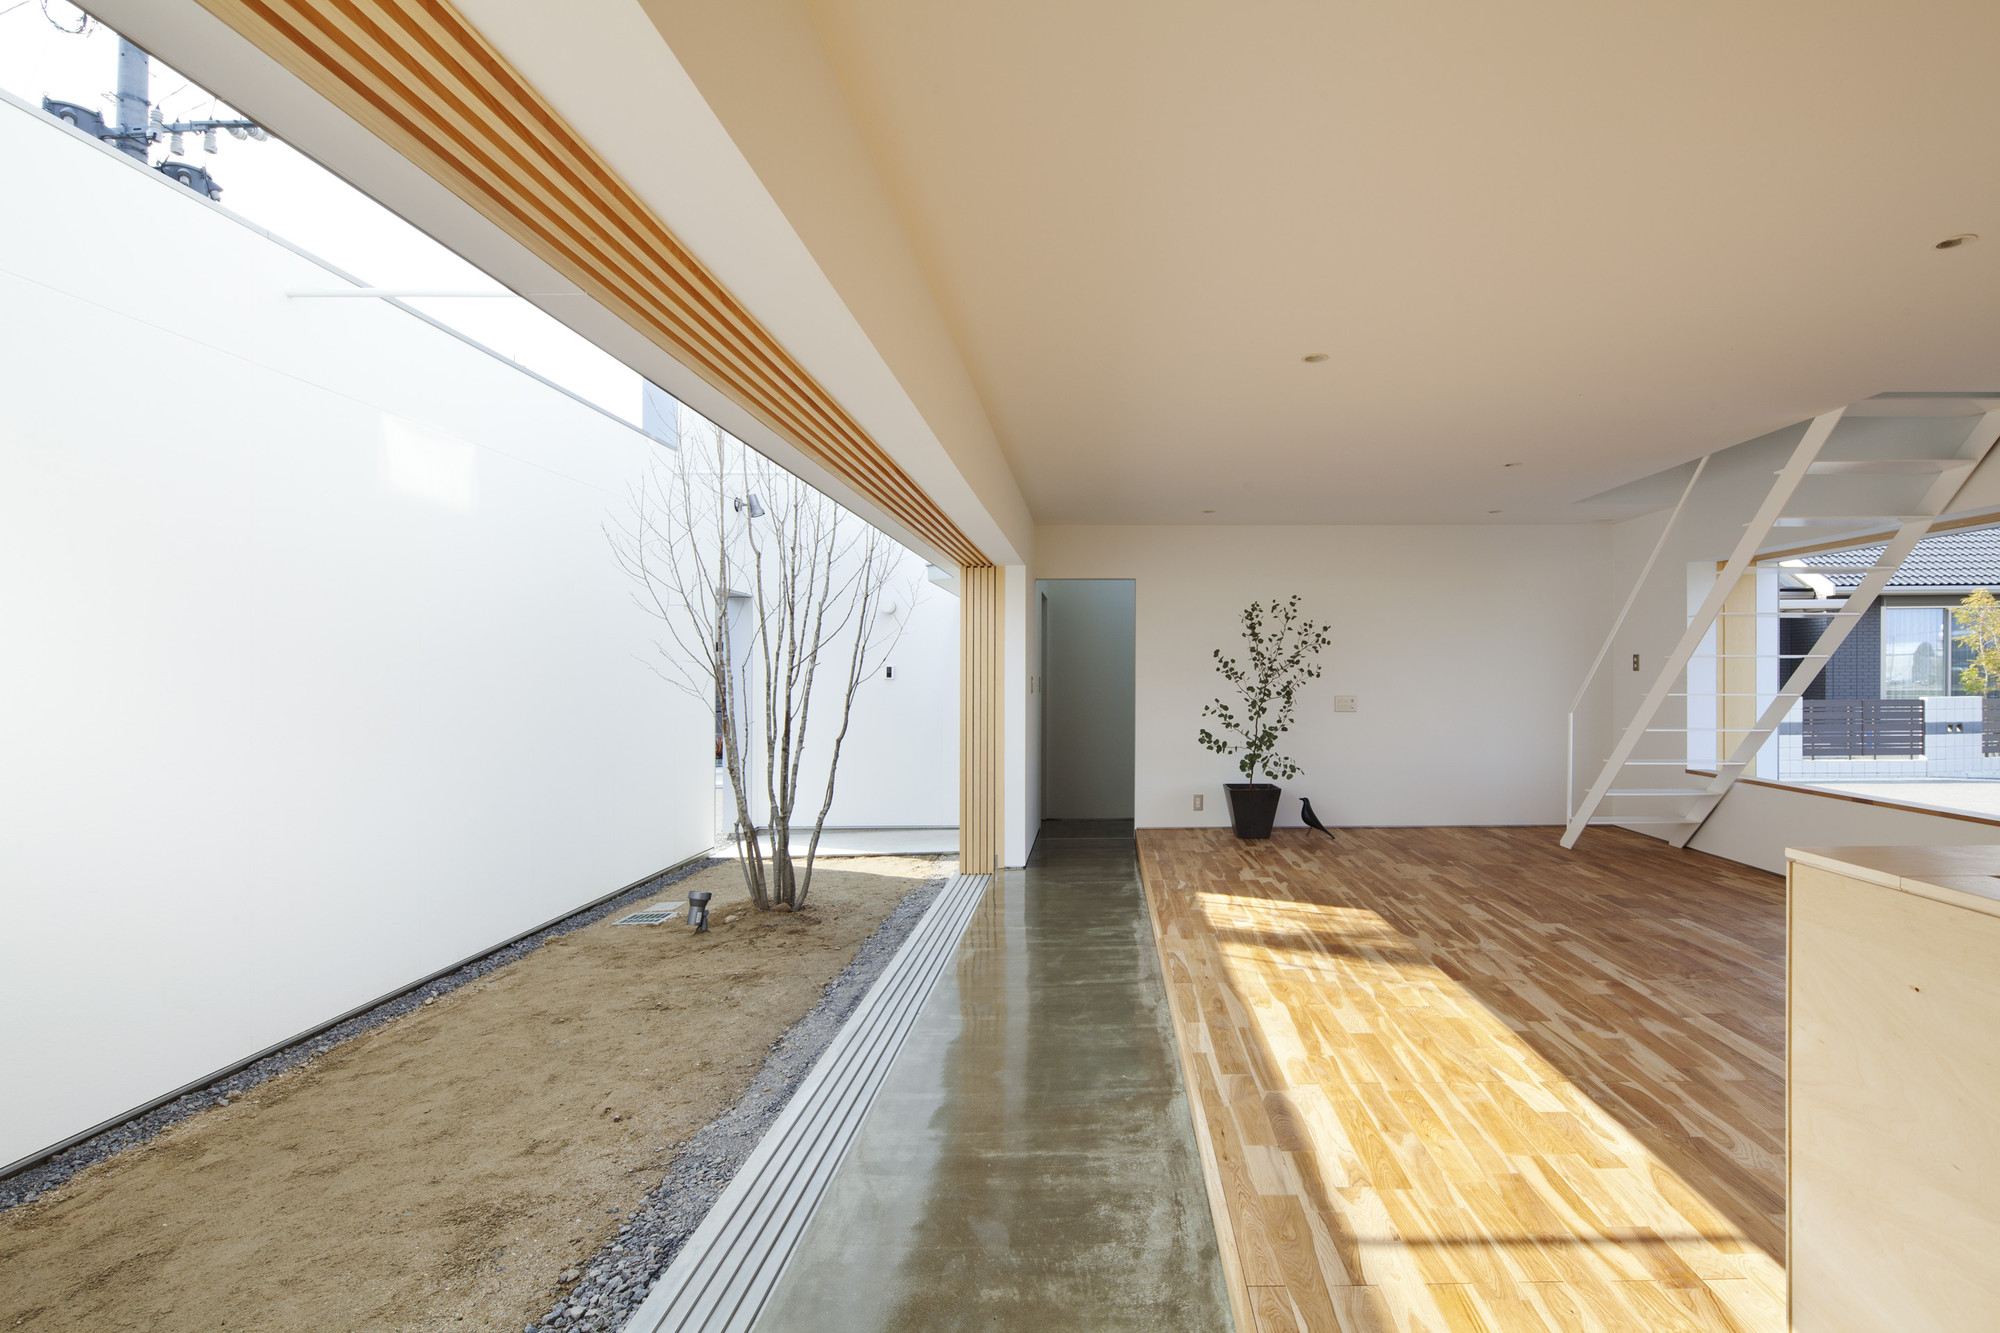 Galeria de a caverna eto kenta atelier architects 1 for De atelier architects